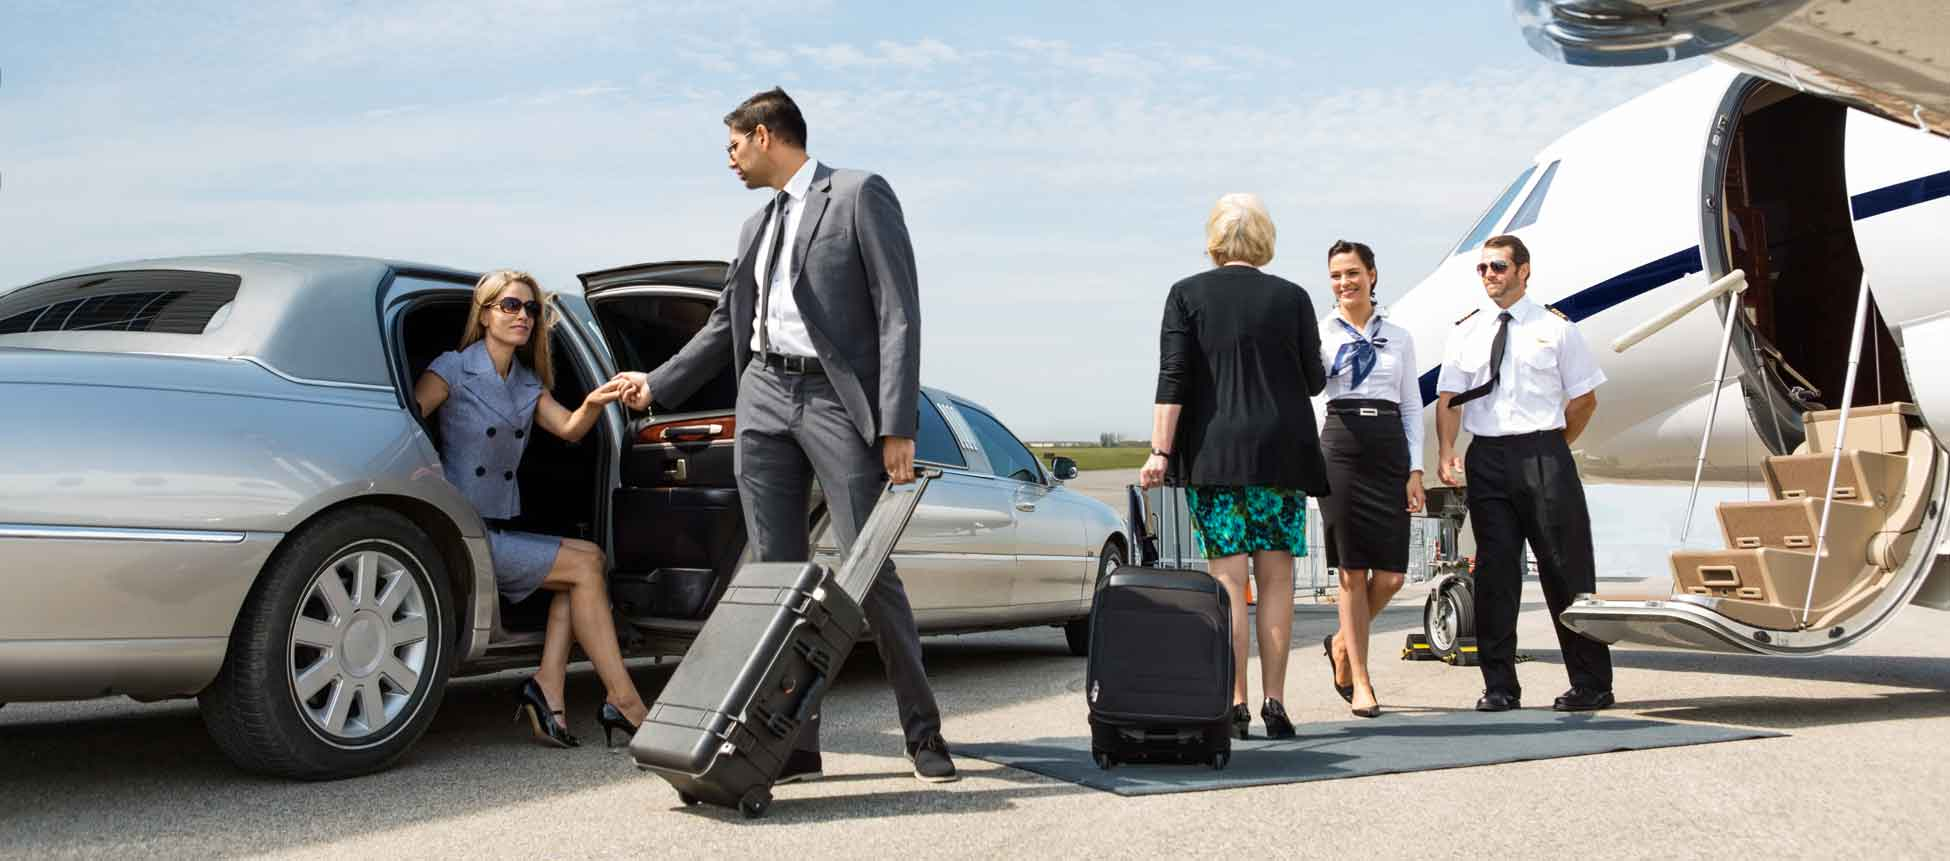 5 Things To Consider Before Planning A Business Trip In 2021